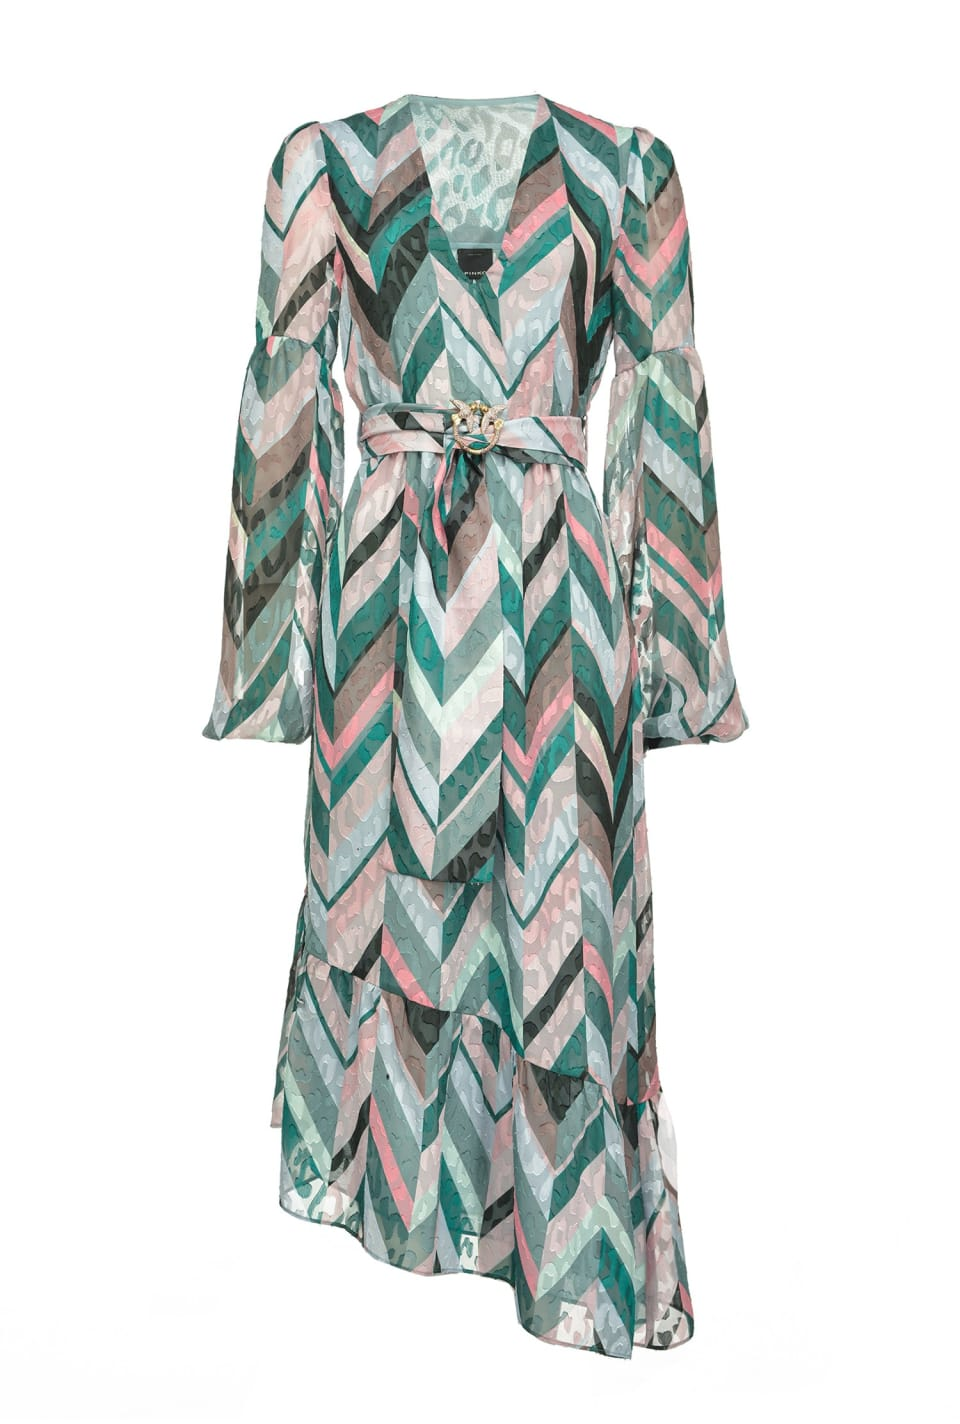 Chevron striped dress - Pinko